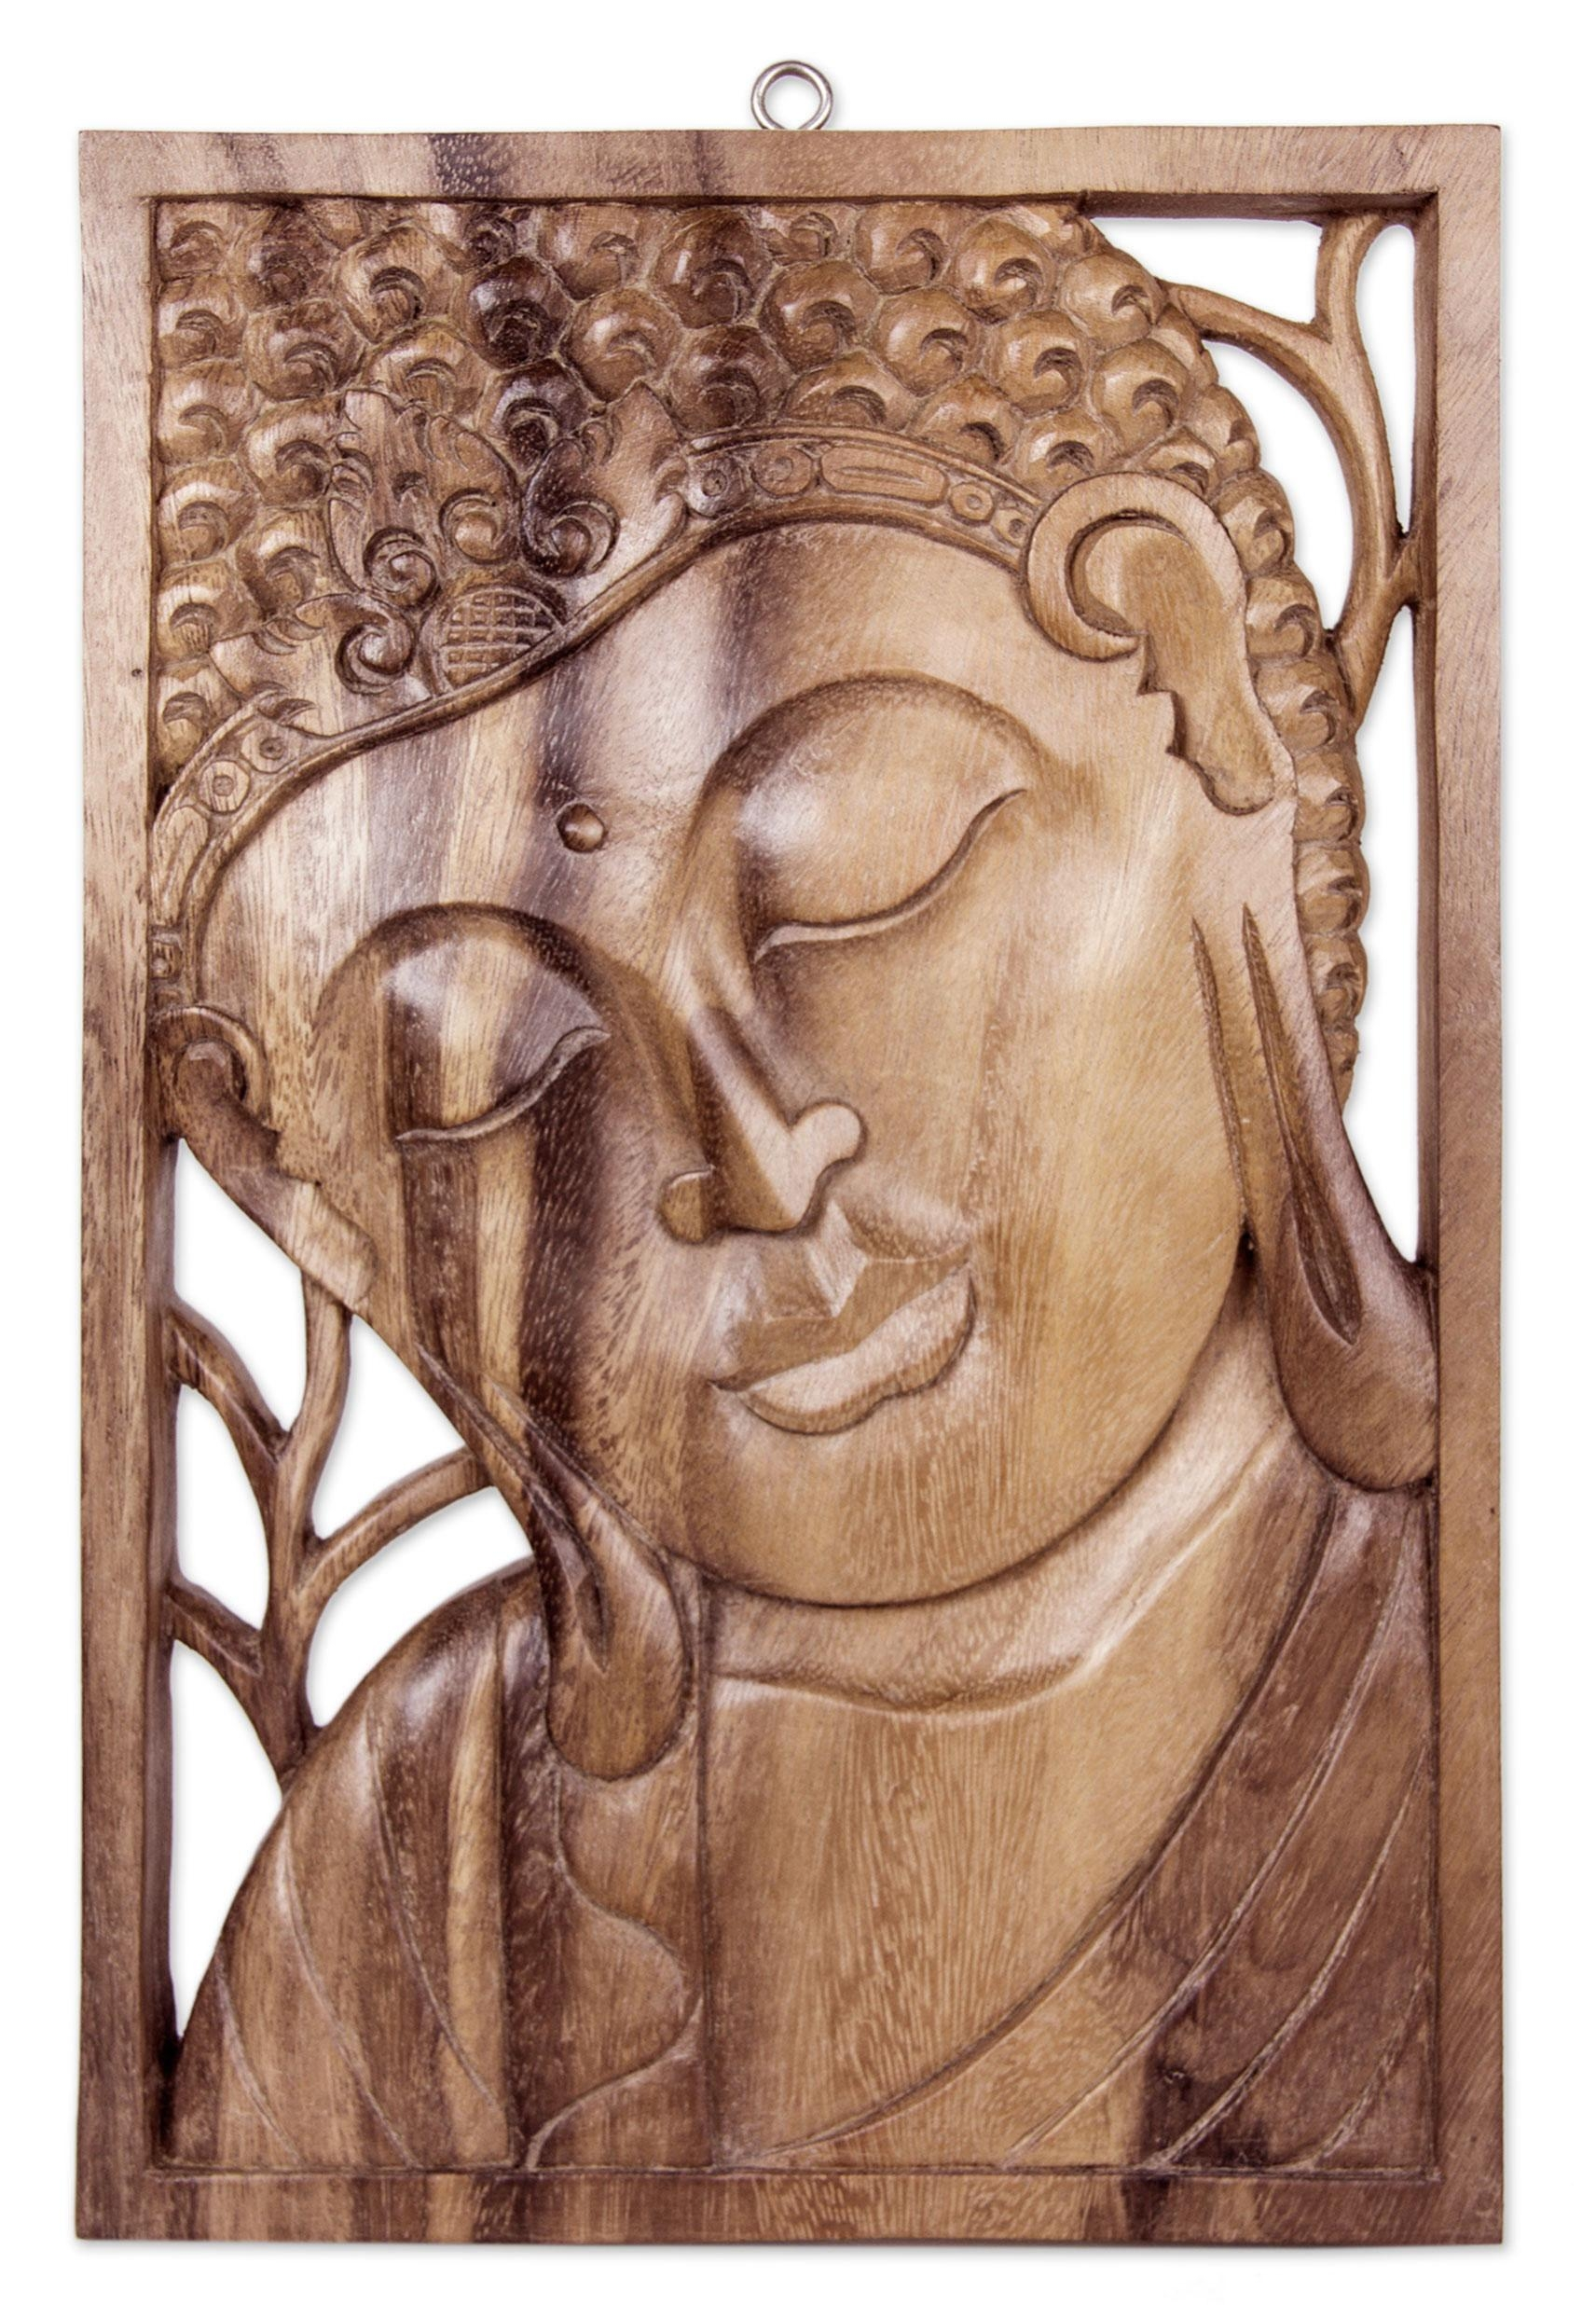 Zen Home Decor Ideas – Buddha Decor And Art | Novica Intended For Balinese Wall Art (Image 20 of 20)